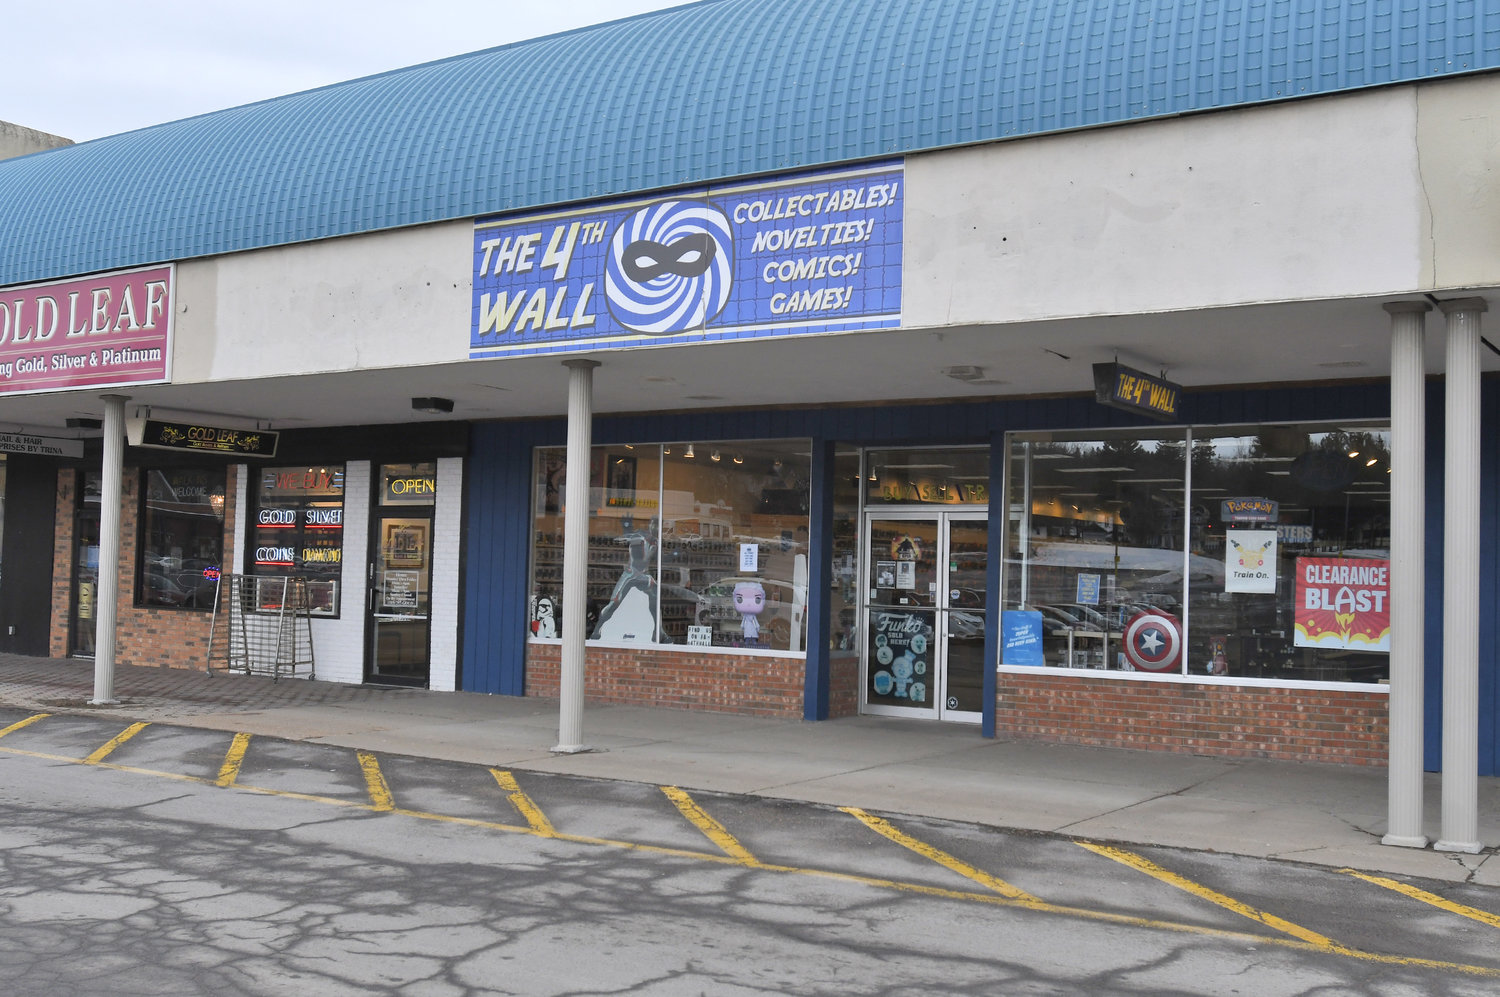 THE 4TH WALL — Located in the New Hartford Shopping Center, The 4th Wall is open every day of the week, typically from 10 or 11 a.m. to 9 p.m.